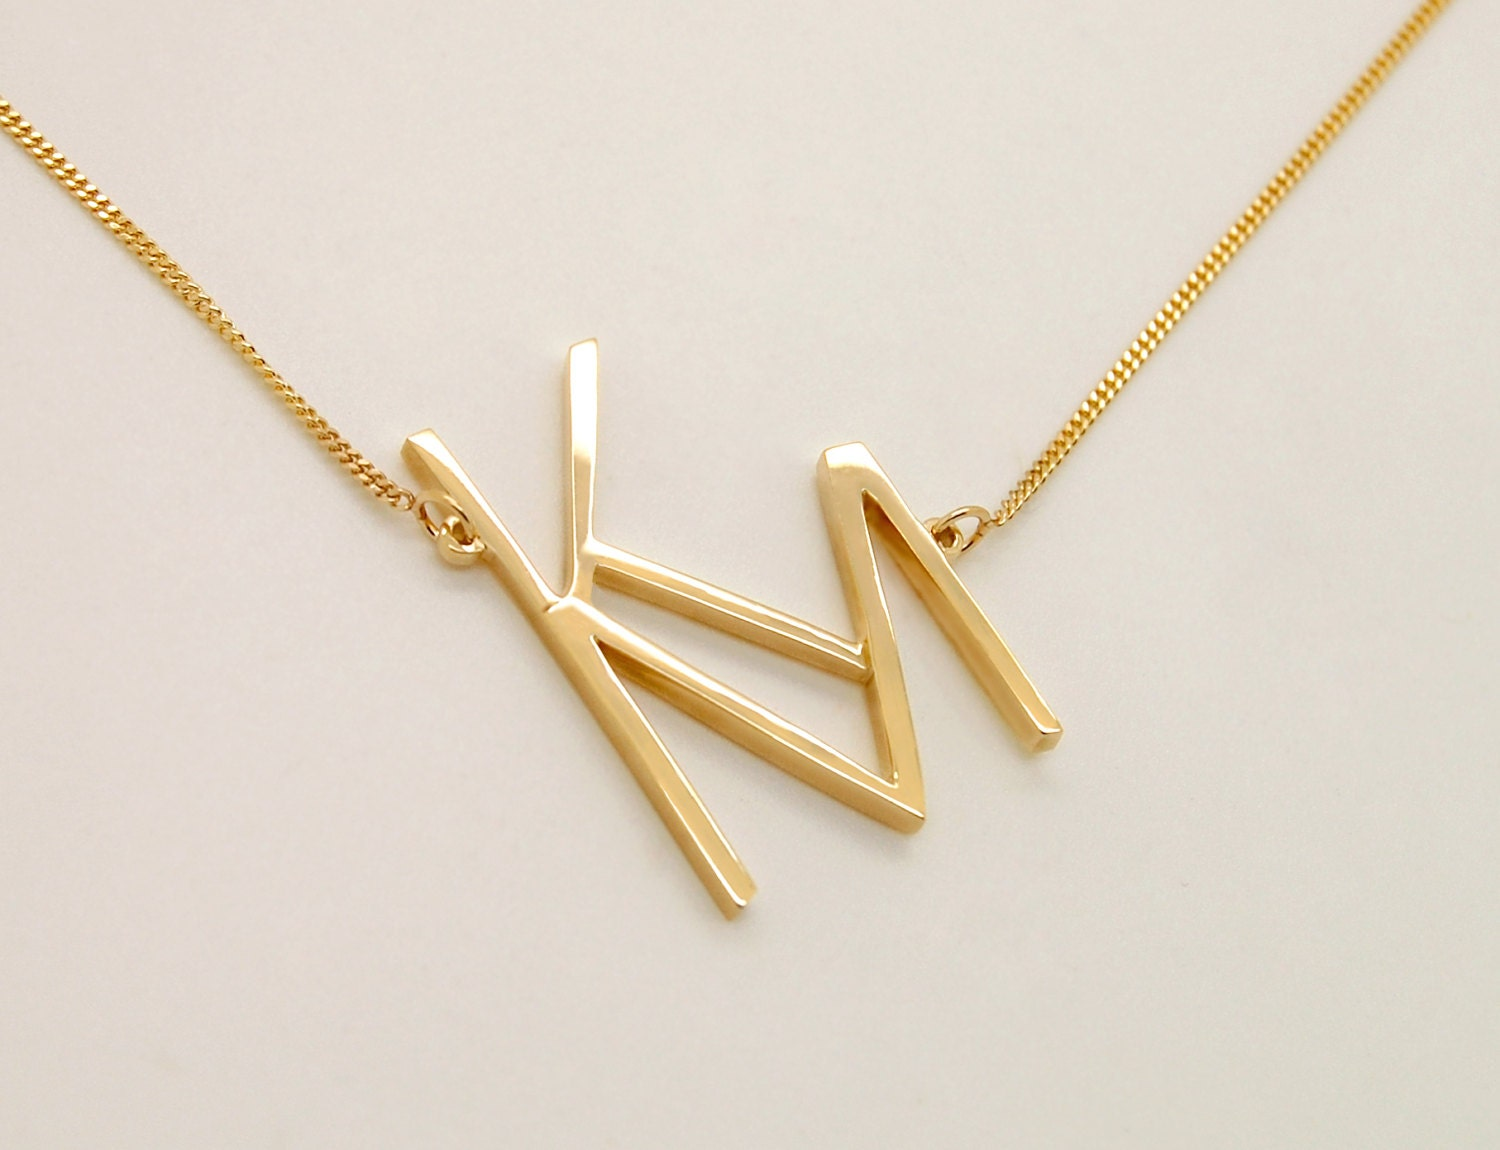 sideways monogram necklace 14k gold initial necklace two initial necklace 2 letter necklace gold k m block letters monogrammed